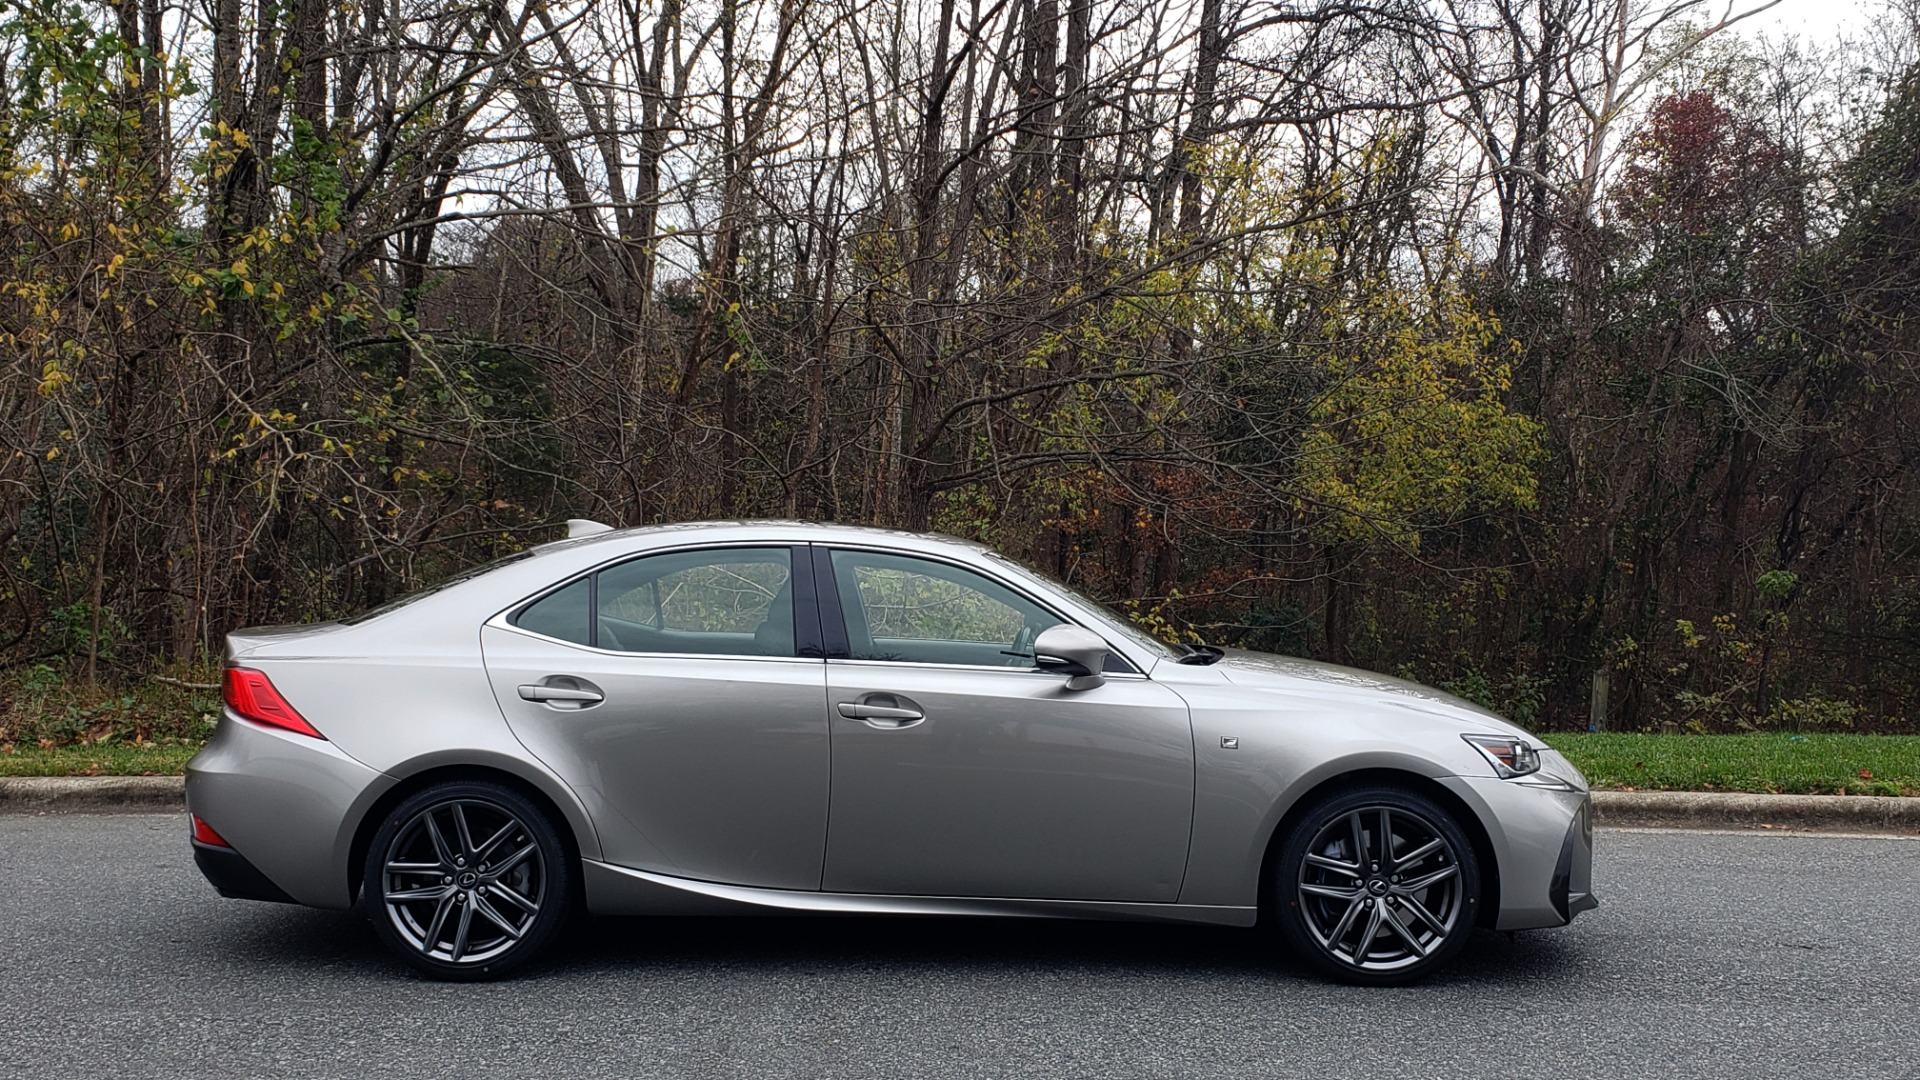 Used 2017 Lexus IS 200 TURBO F-SPORT / BSM / SUNROOF / VENT SEATS / REARVIEW for sale Sold at Formula Imports in Charlotte NC 28227 10